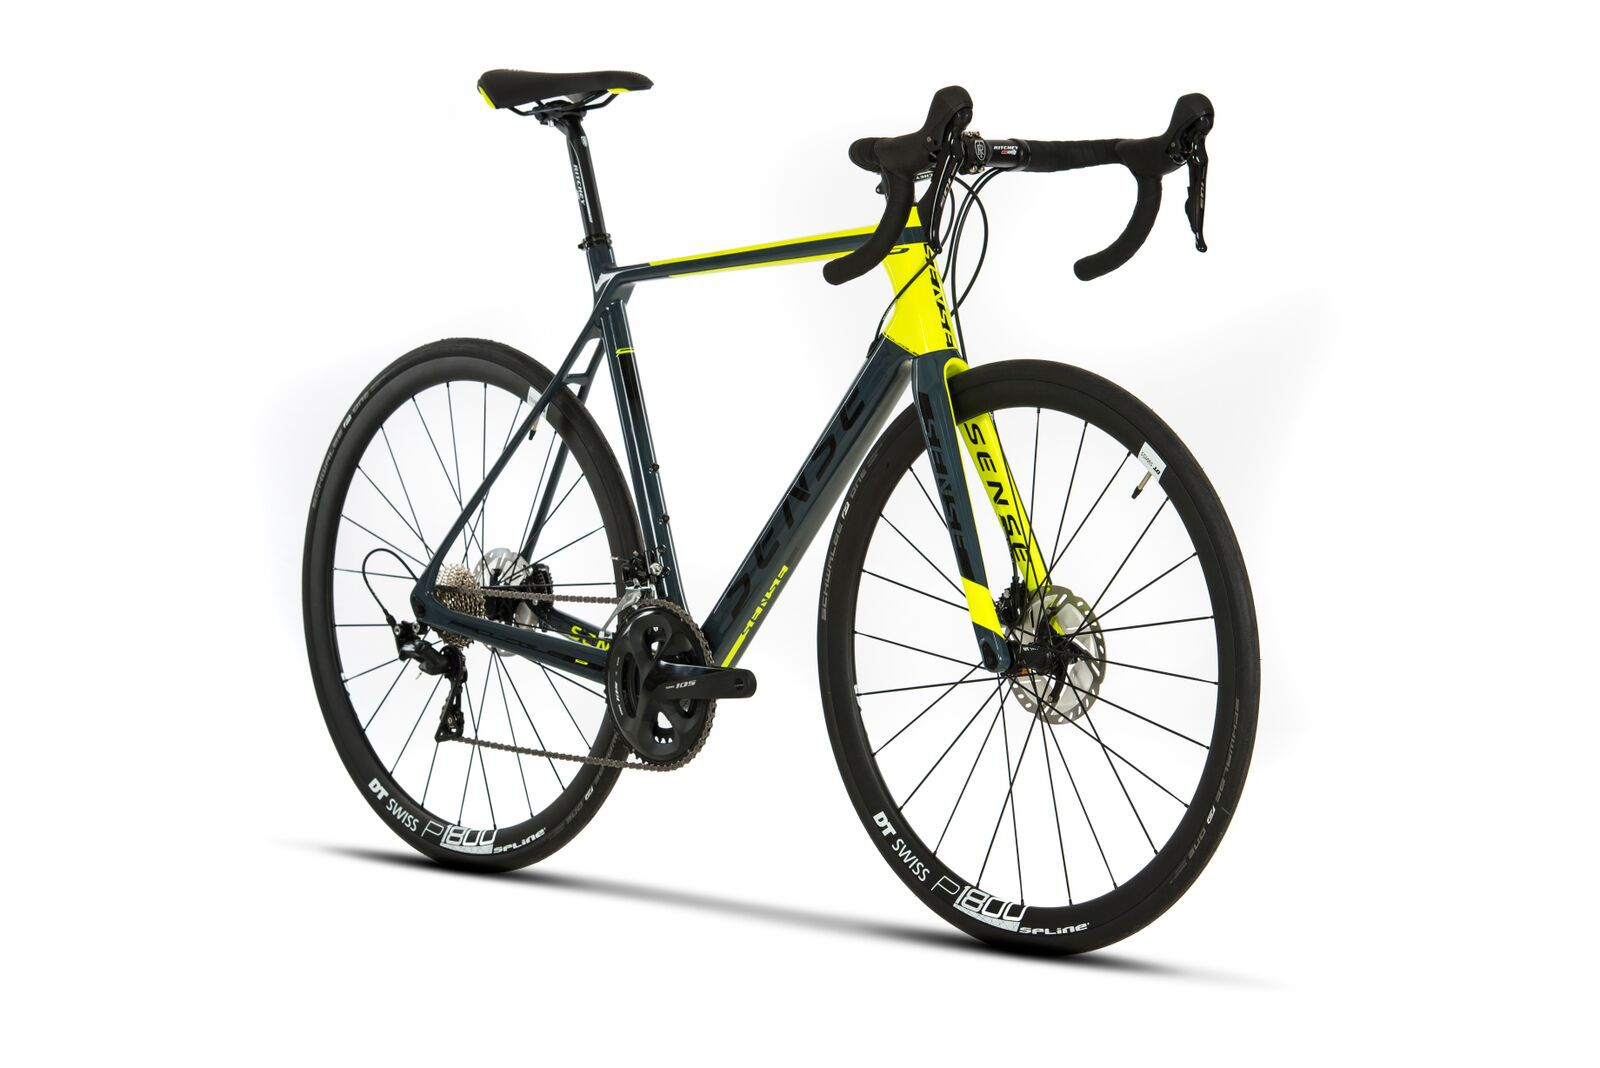 Bicicleta Prologue Disc - Sense